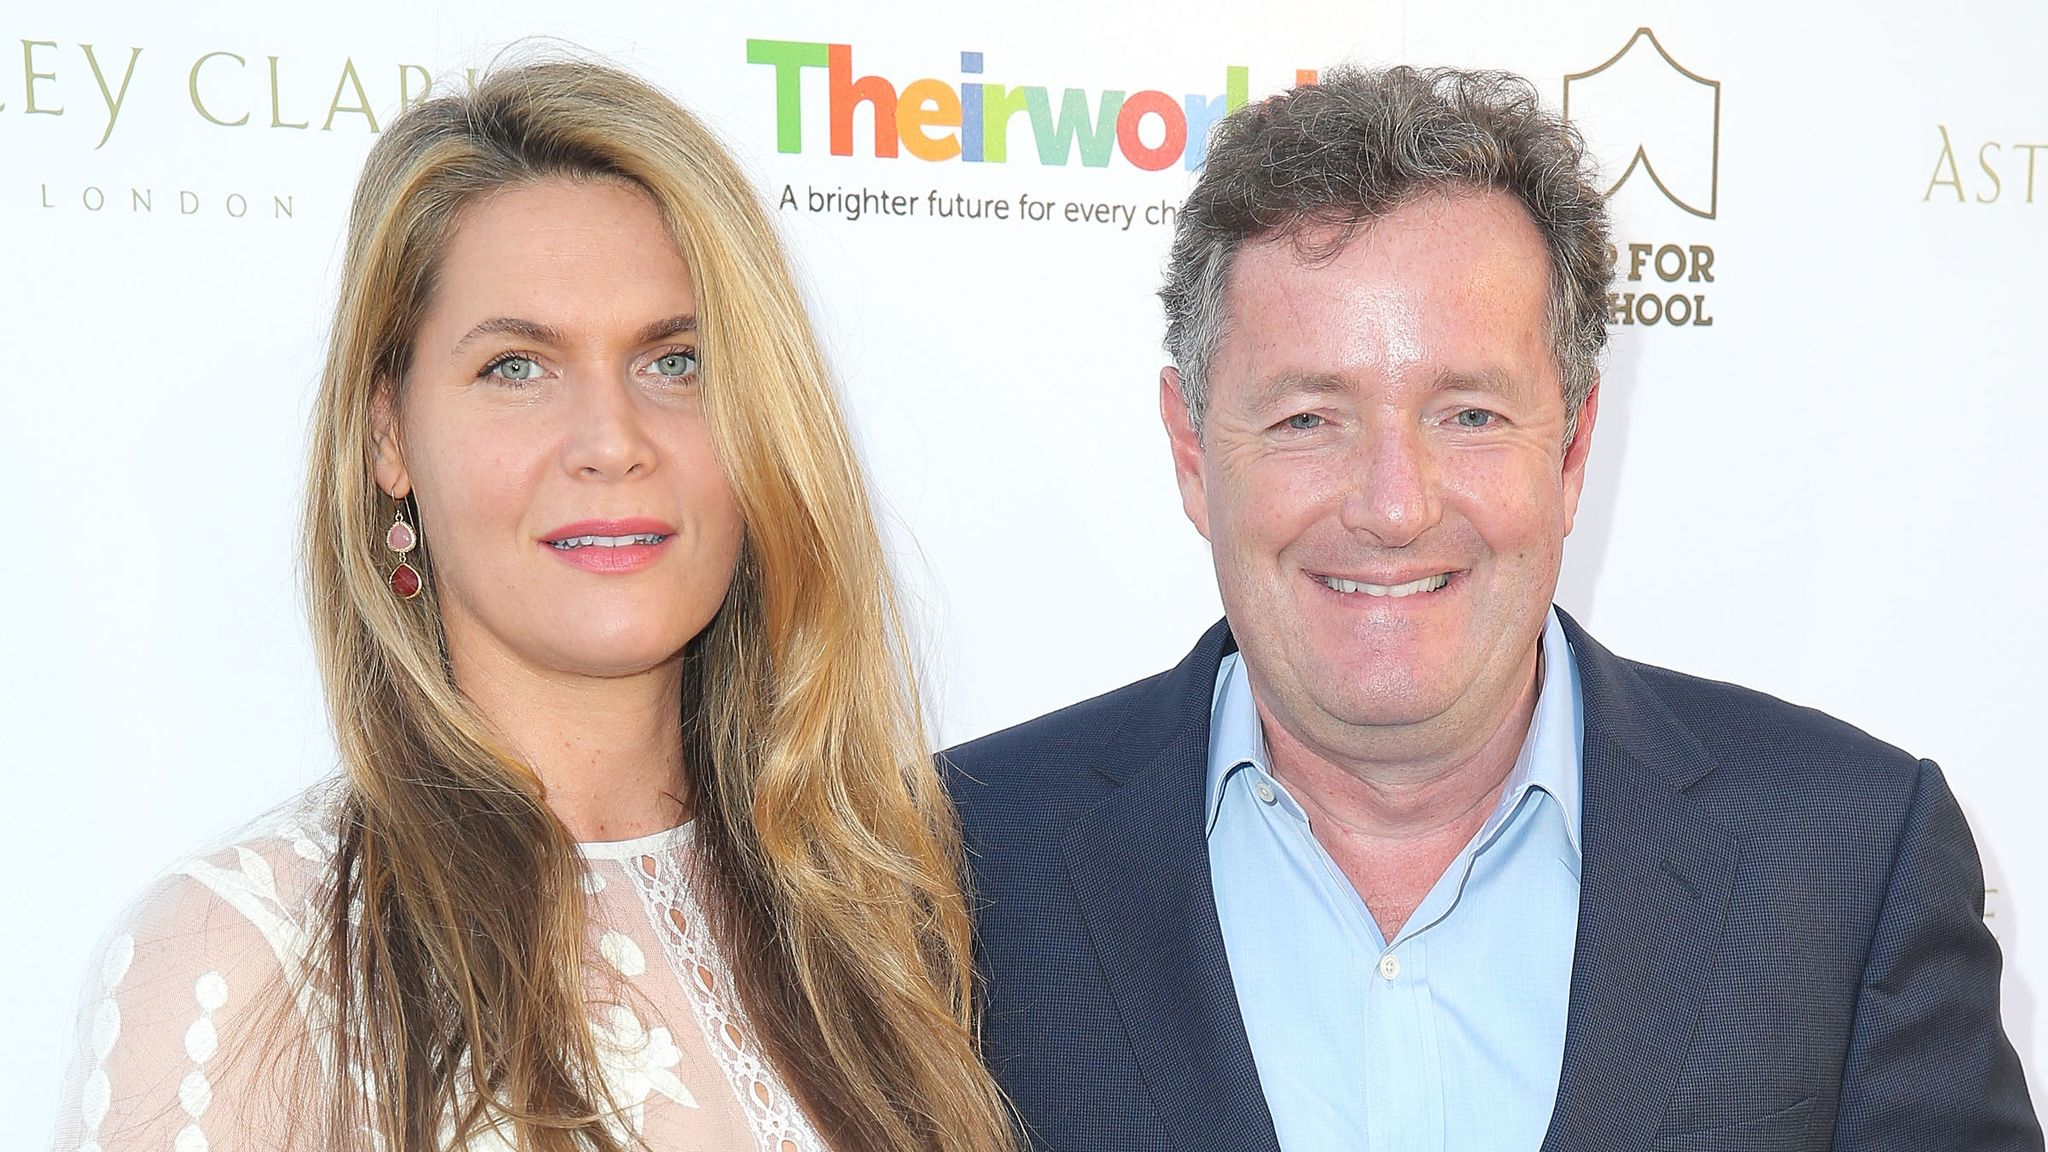 Piers Morgan and wife Celia Walden burgled while they slept in French villa  | Ents & Arts News | Sky News